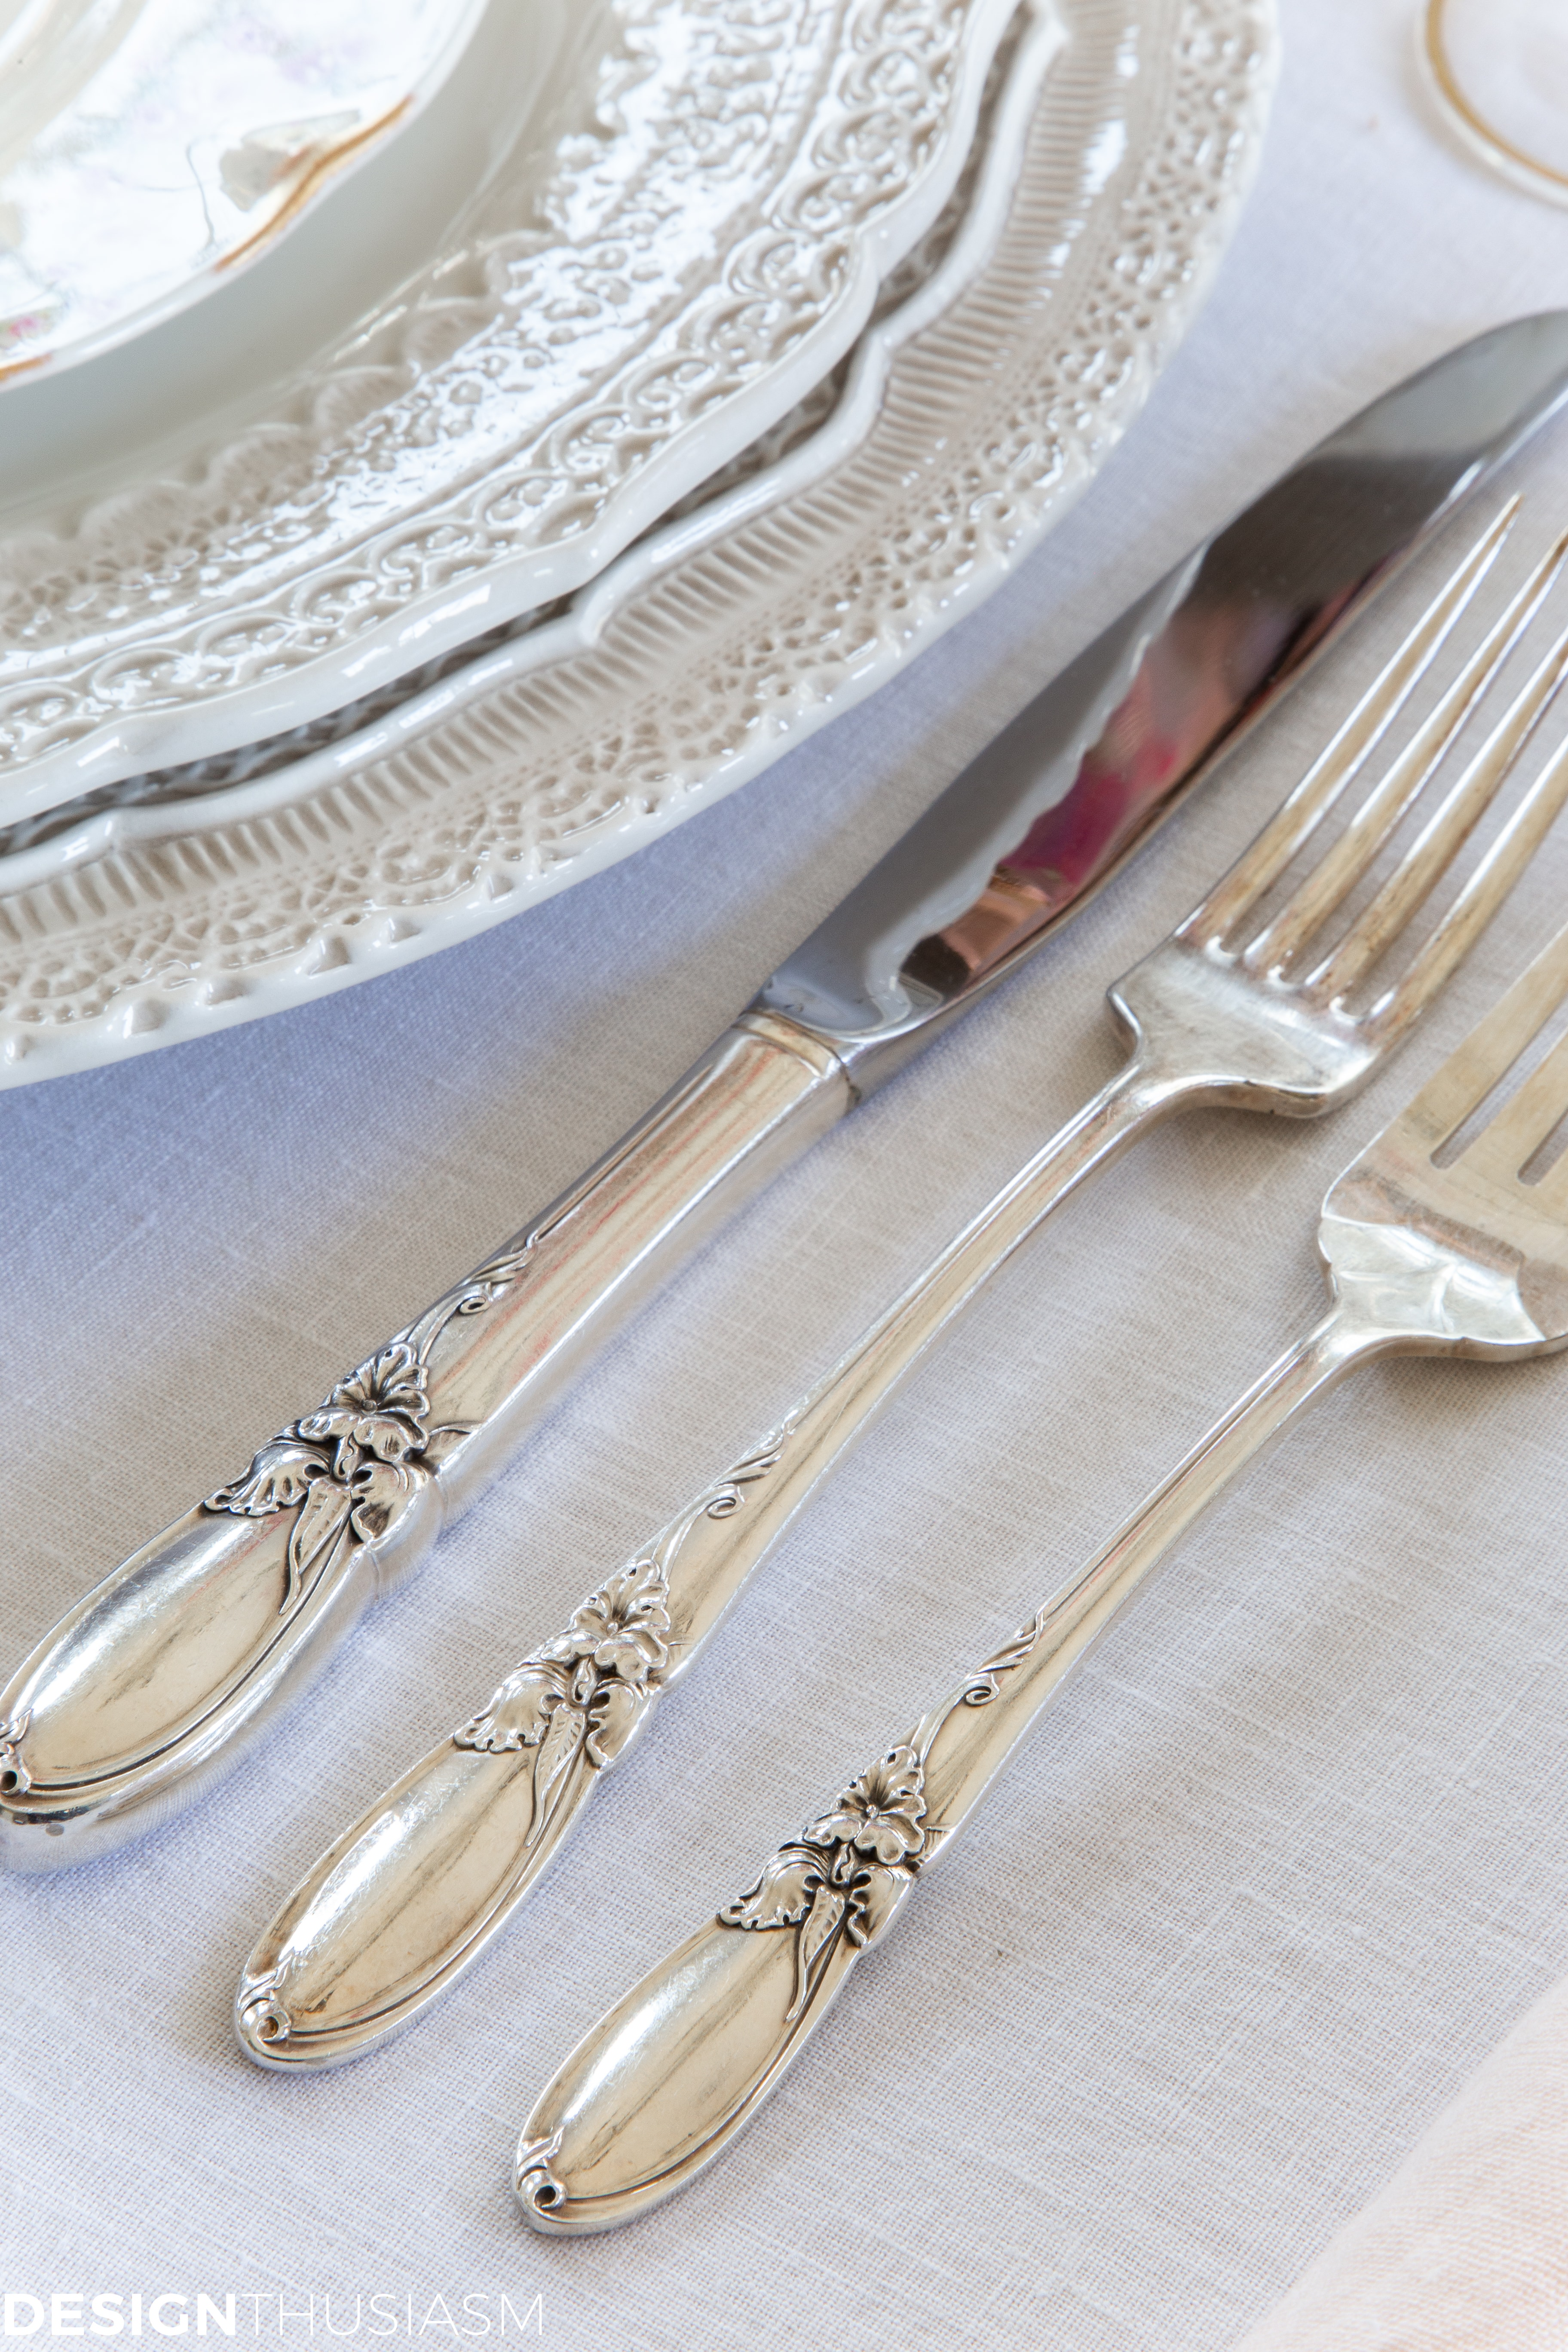 flatware for easter table setting